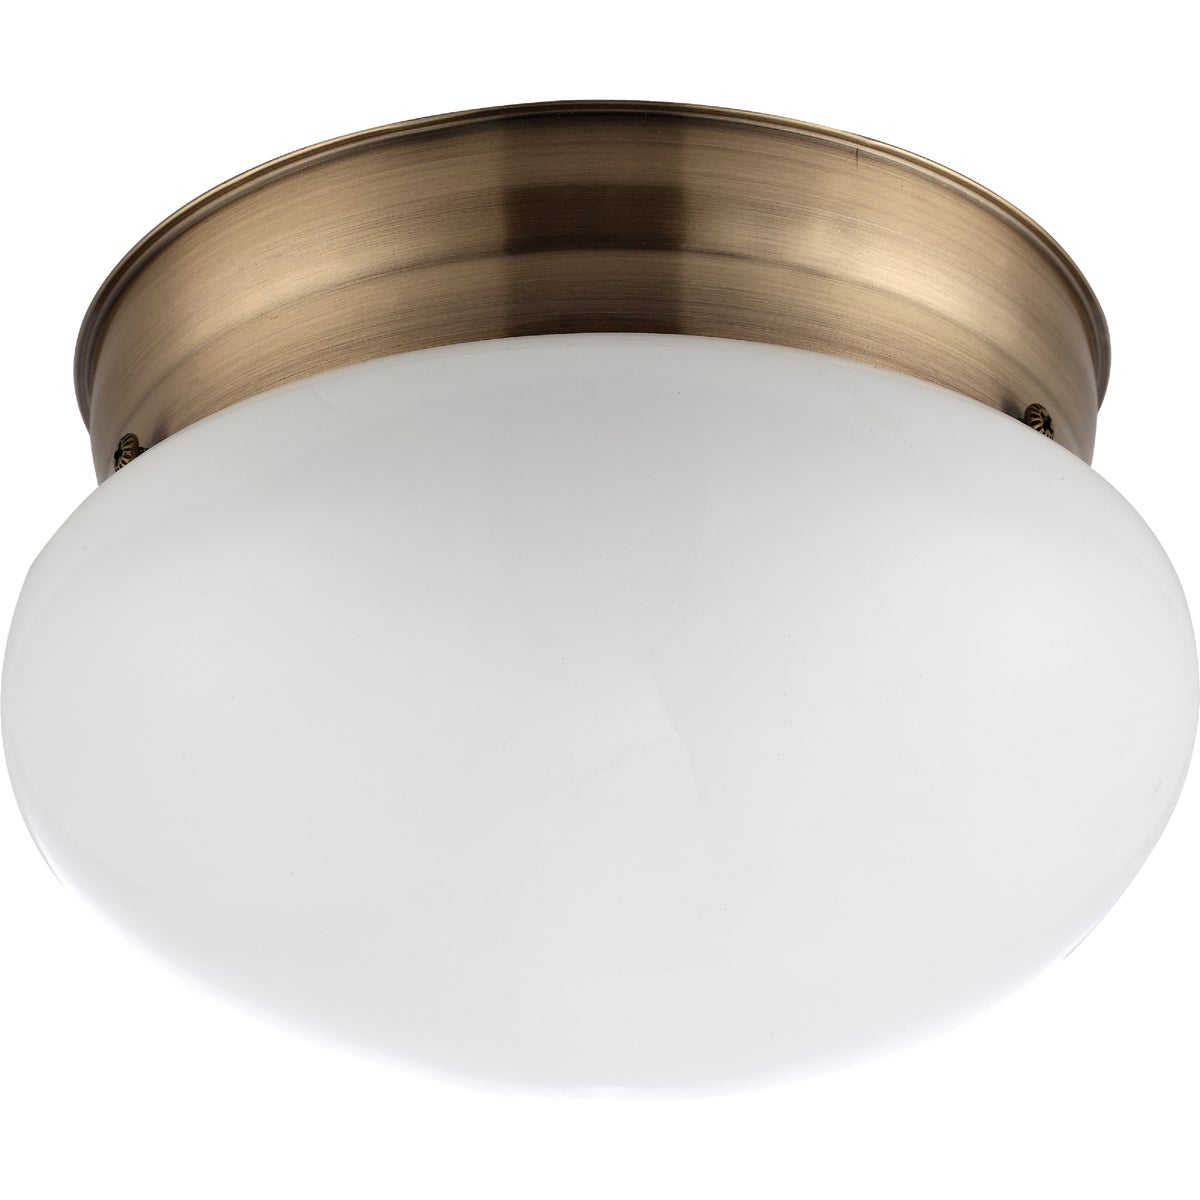 1BULB AB CEILING FIXTURE - IFM137AB by Canarm Gs